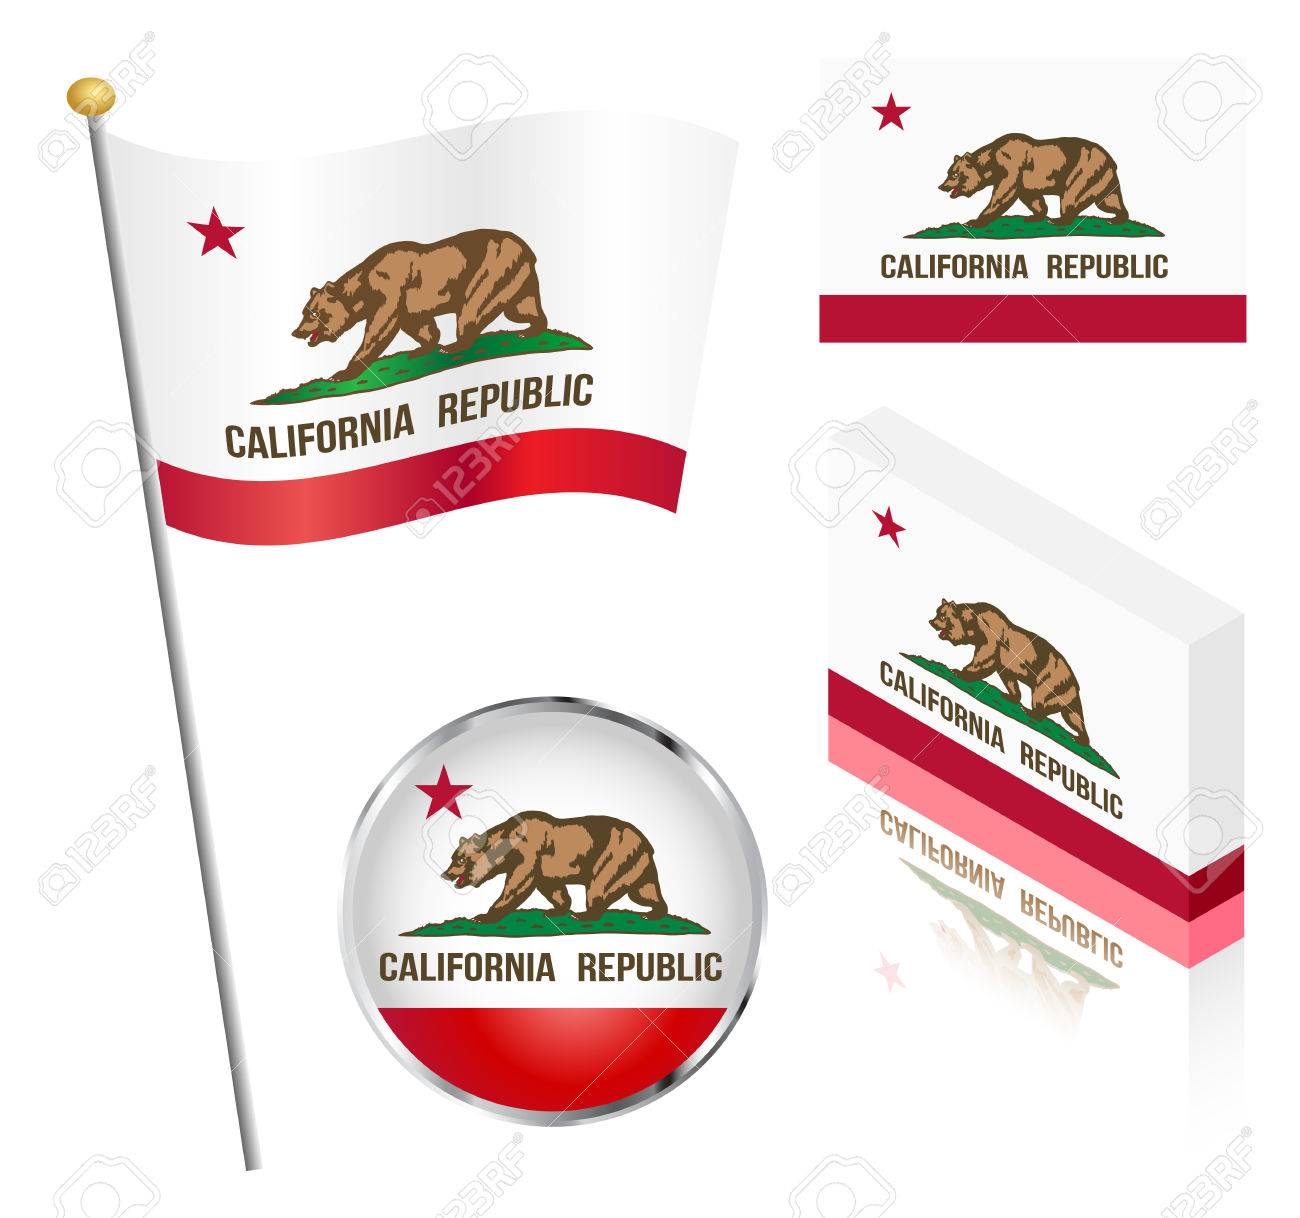 State of California flag on a pole, badge and isometric designs vector illustration. - 41372408